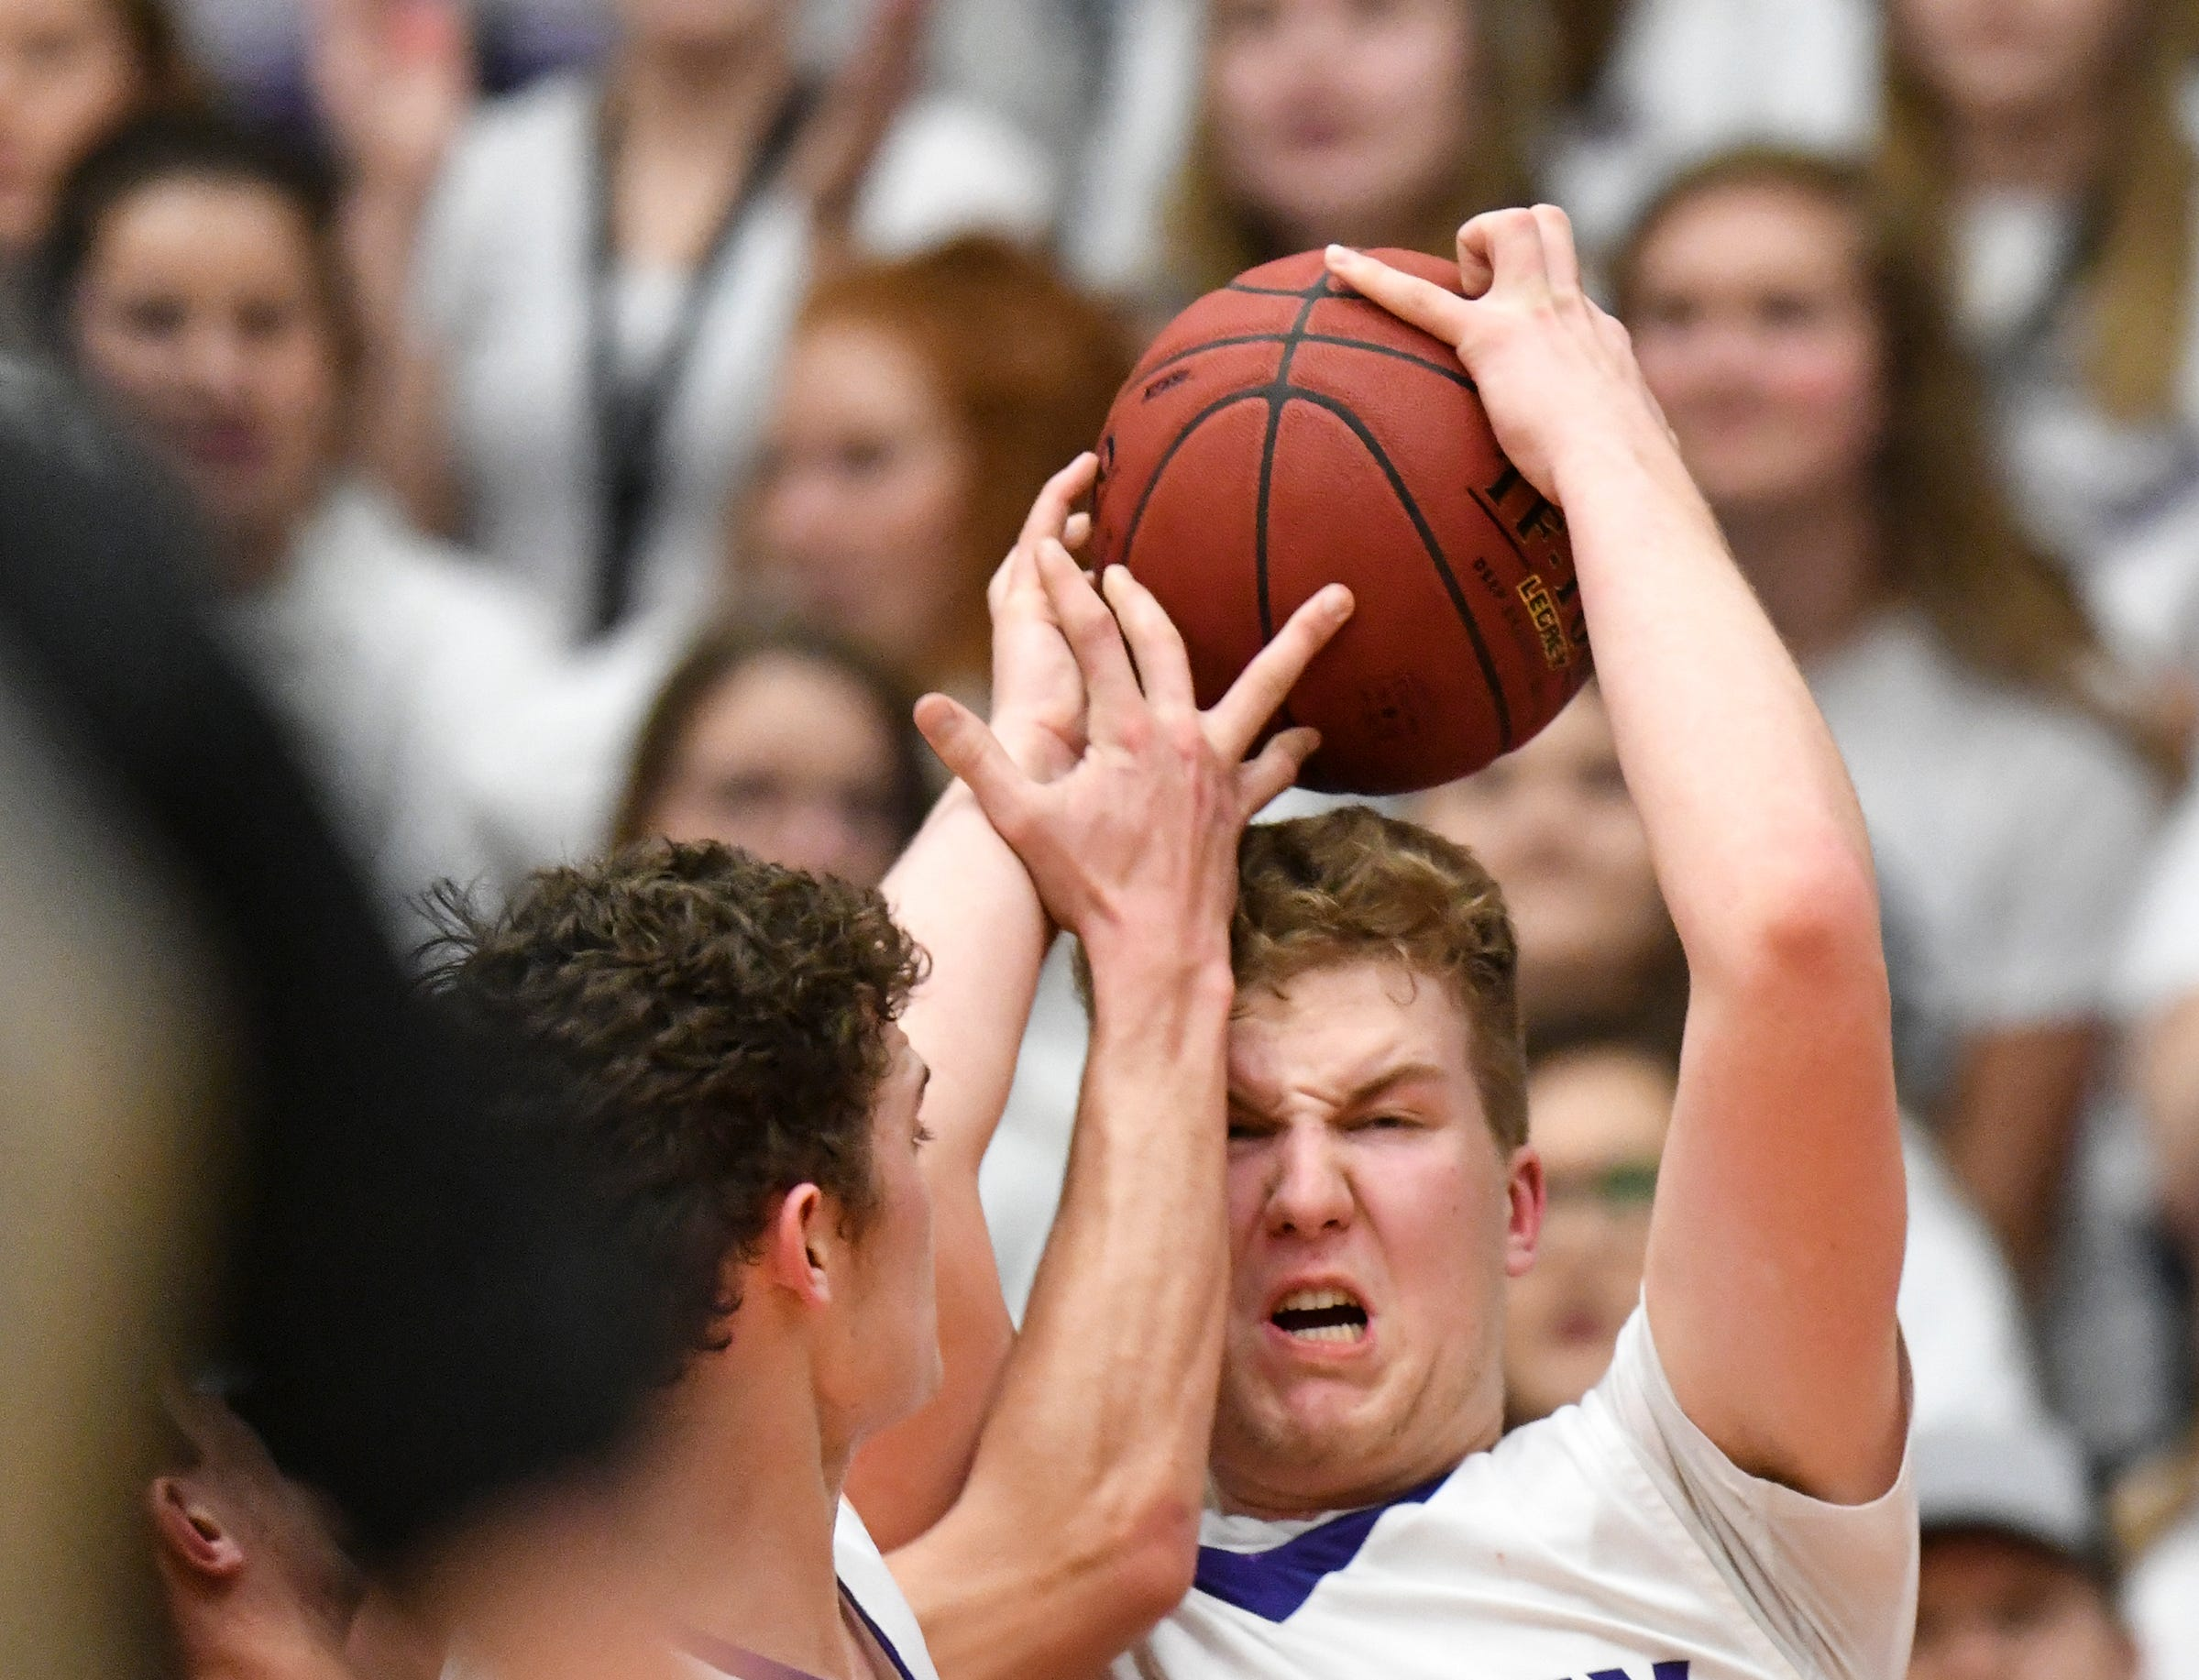 Albany's Andrew Hahn grabs a rebound during the first half of the Friday, March 15, Section 6-2A championship game at  Halenbeck Hall in St. Cloud.